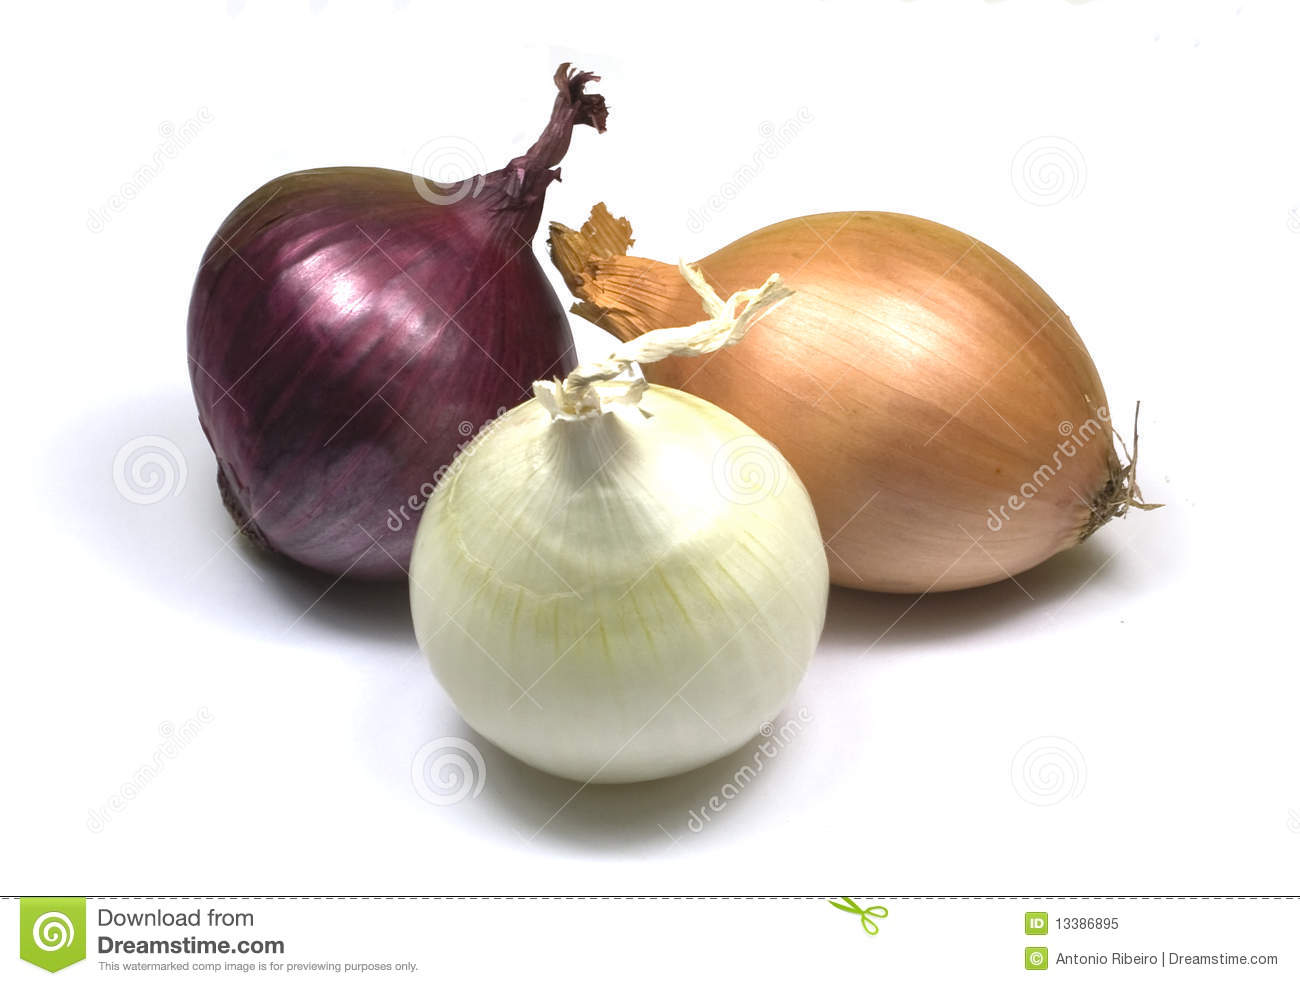 how to cut a white onion